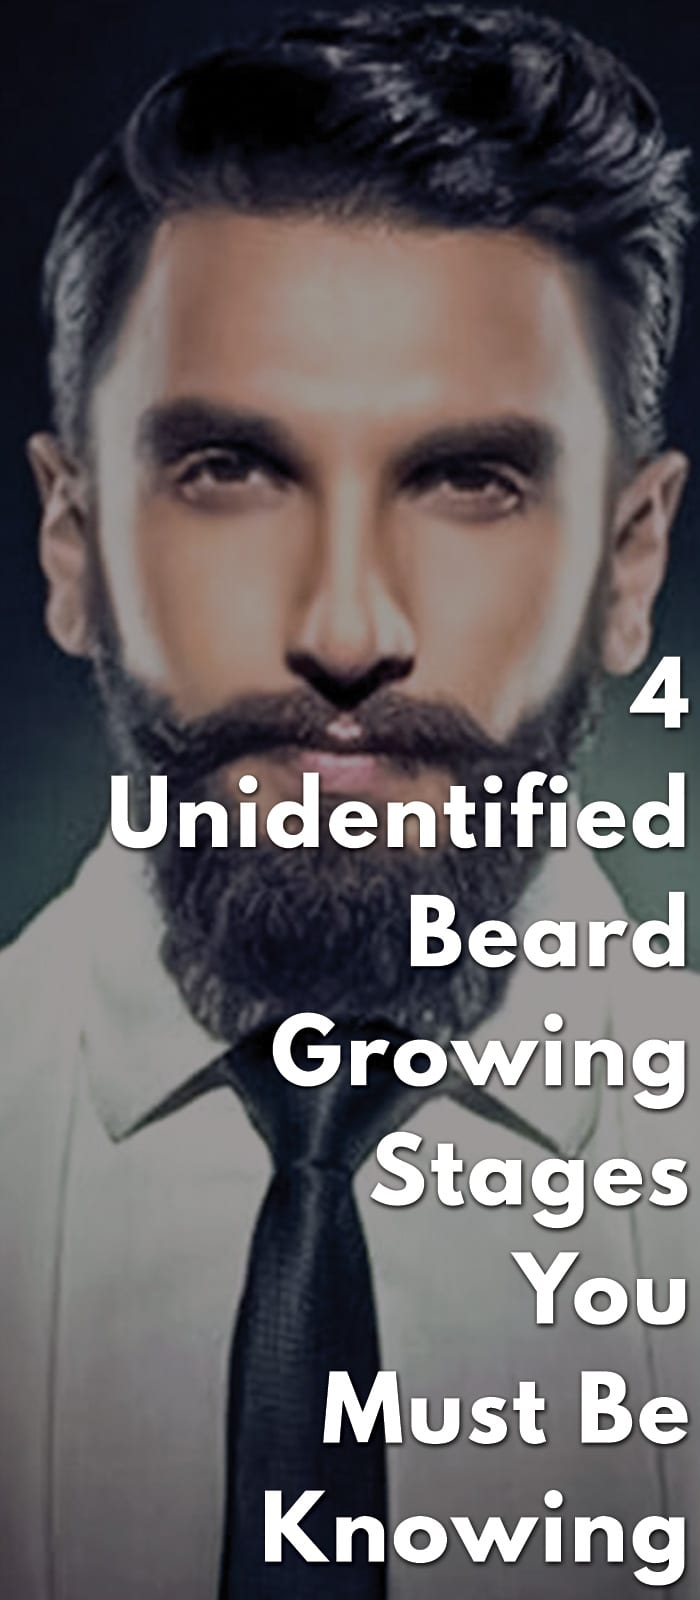 4-Unidentified-Beard-Growing-Stages-You-Must-be-Knowing.